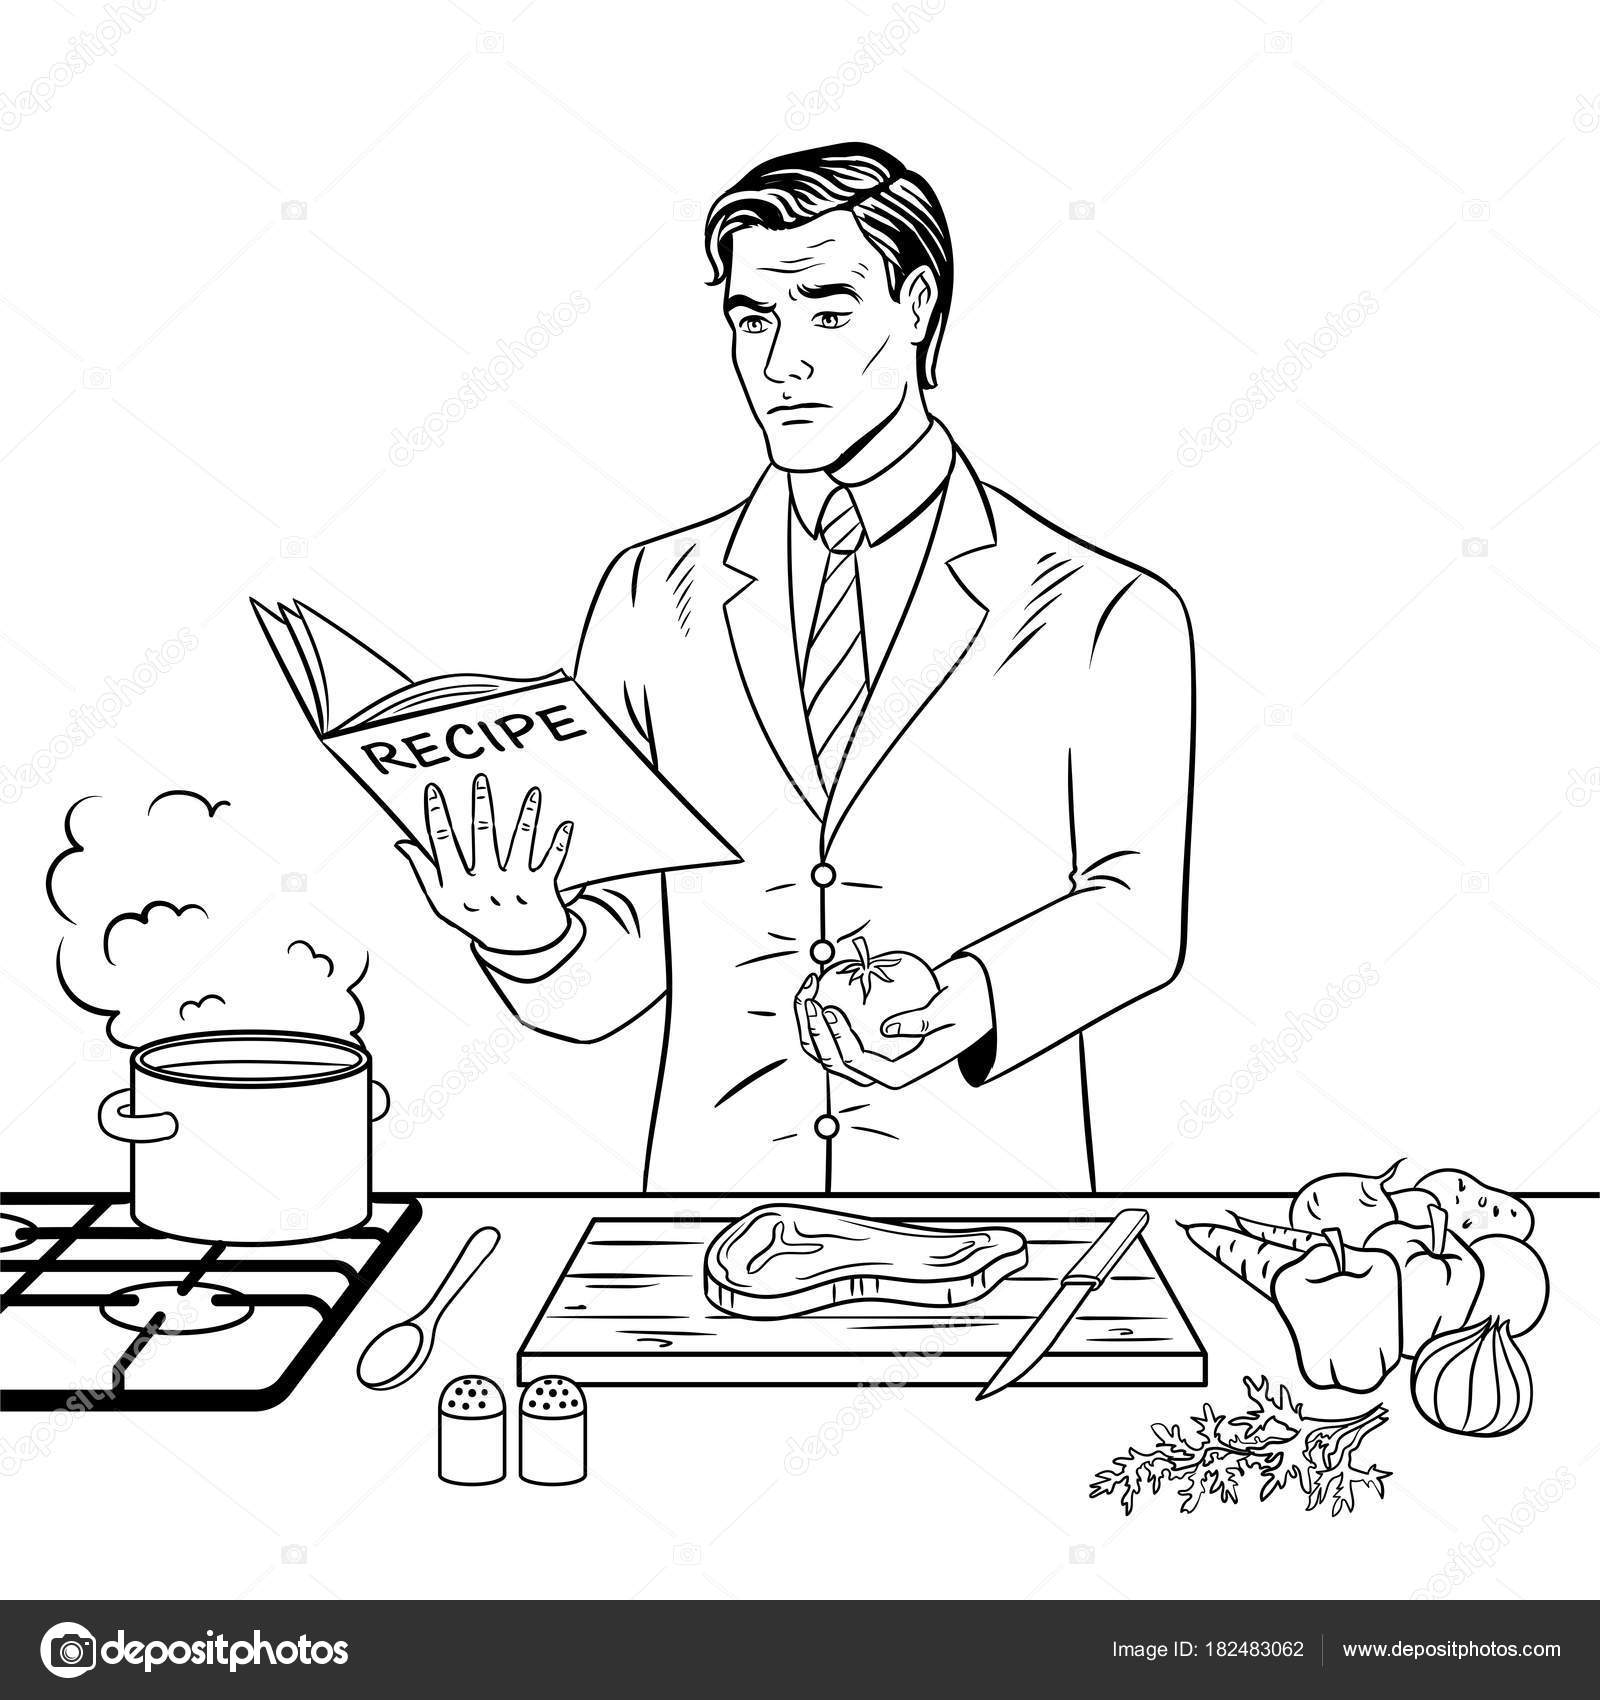 Man cooking food coloring book vector stock vector businessman cooking food coloring vector illustration isolated image on white background comic book style imitation vector by alexanderpokusay forumfinder Image collections